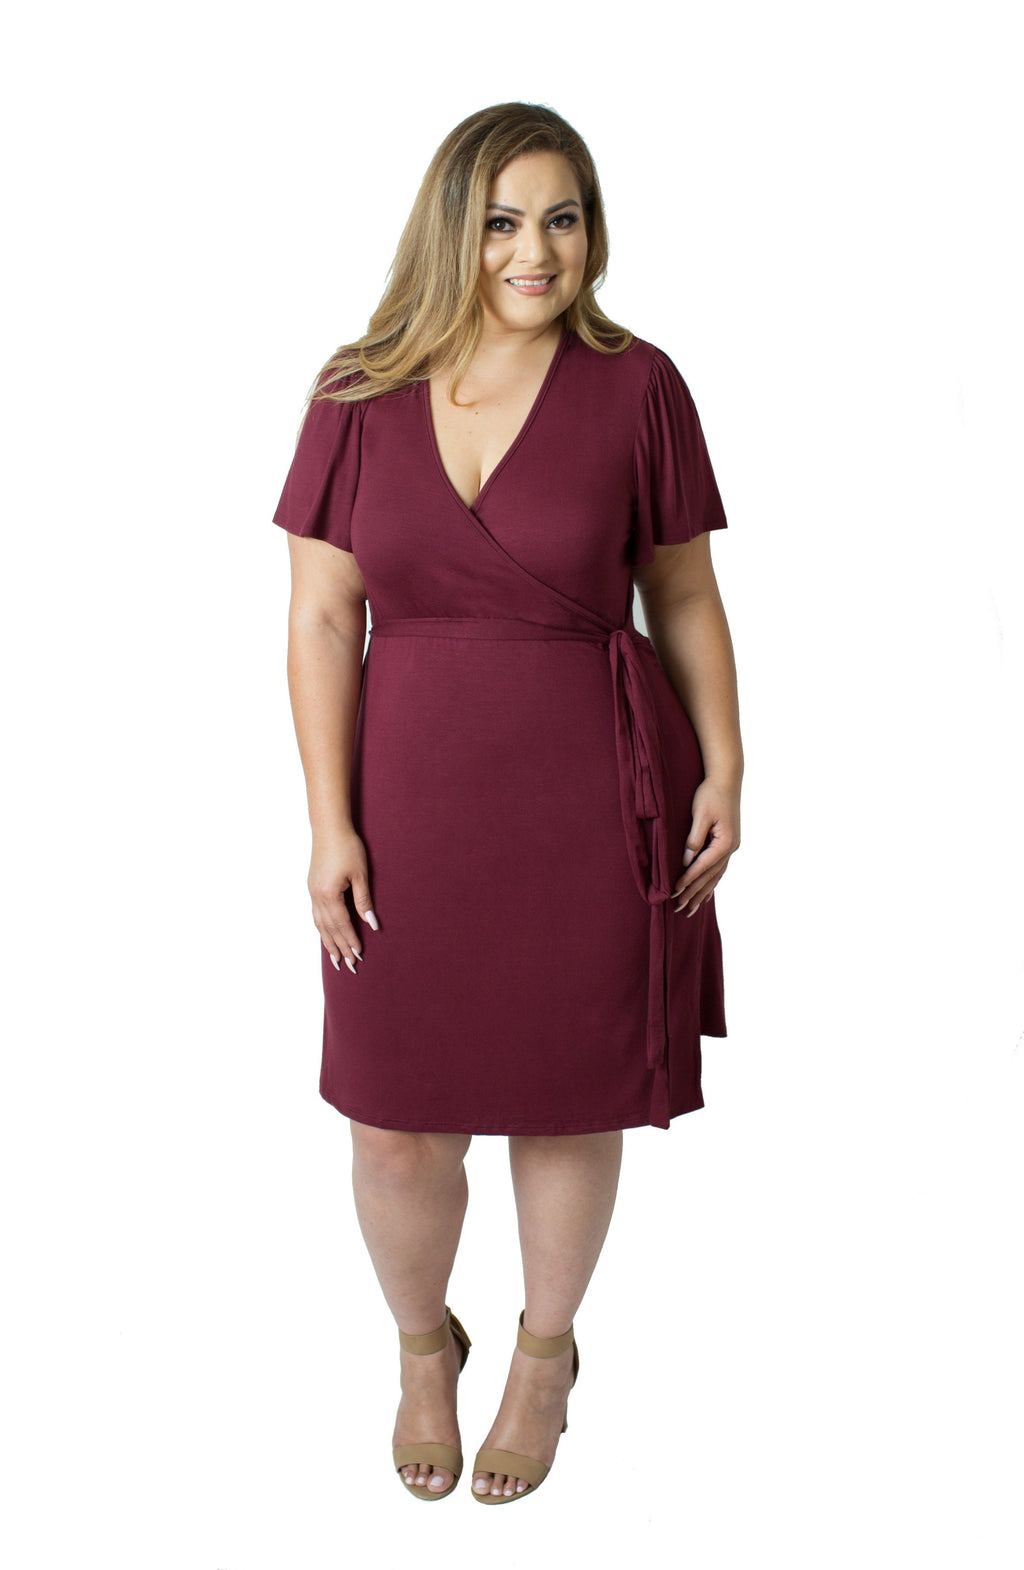 Maternity/Nursing Plus Size Wrap Dress in Bordeaux by Udderly Hot Mama